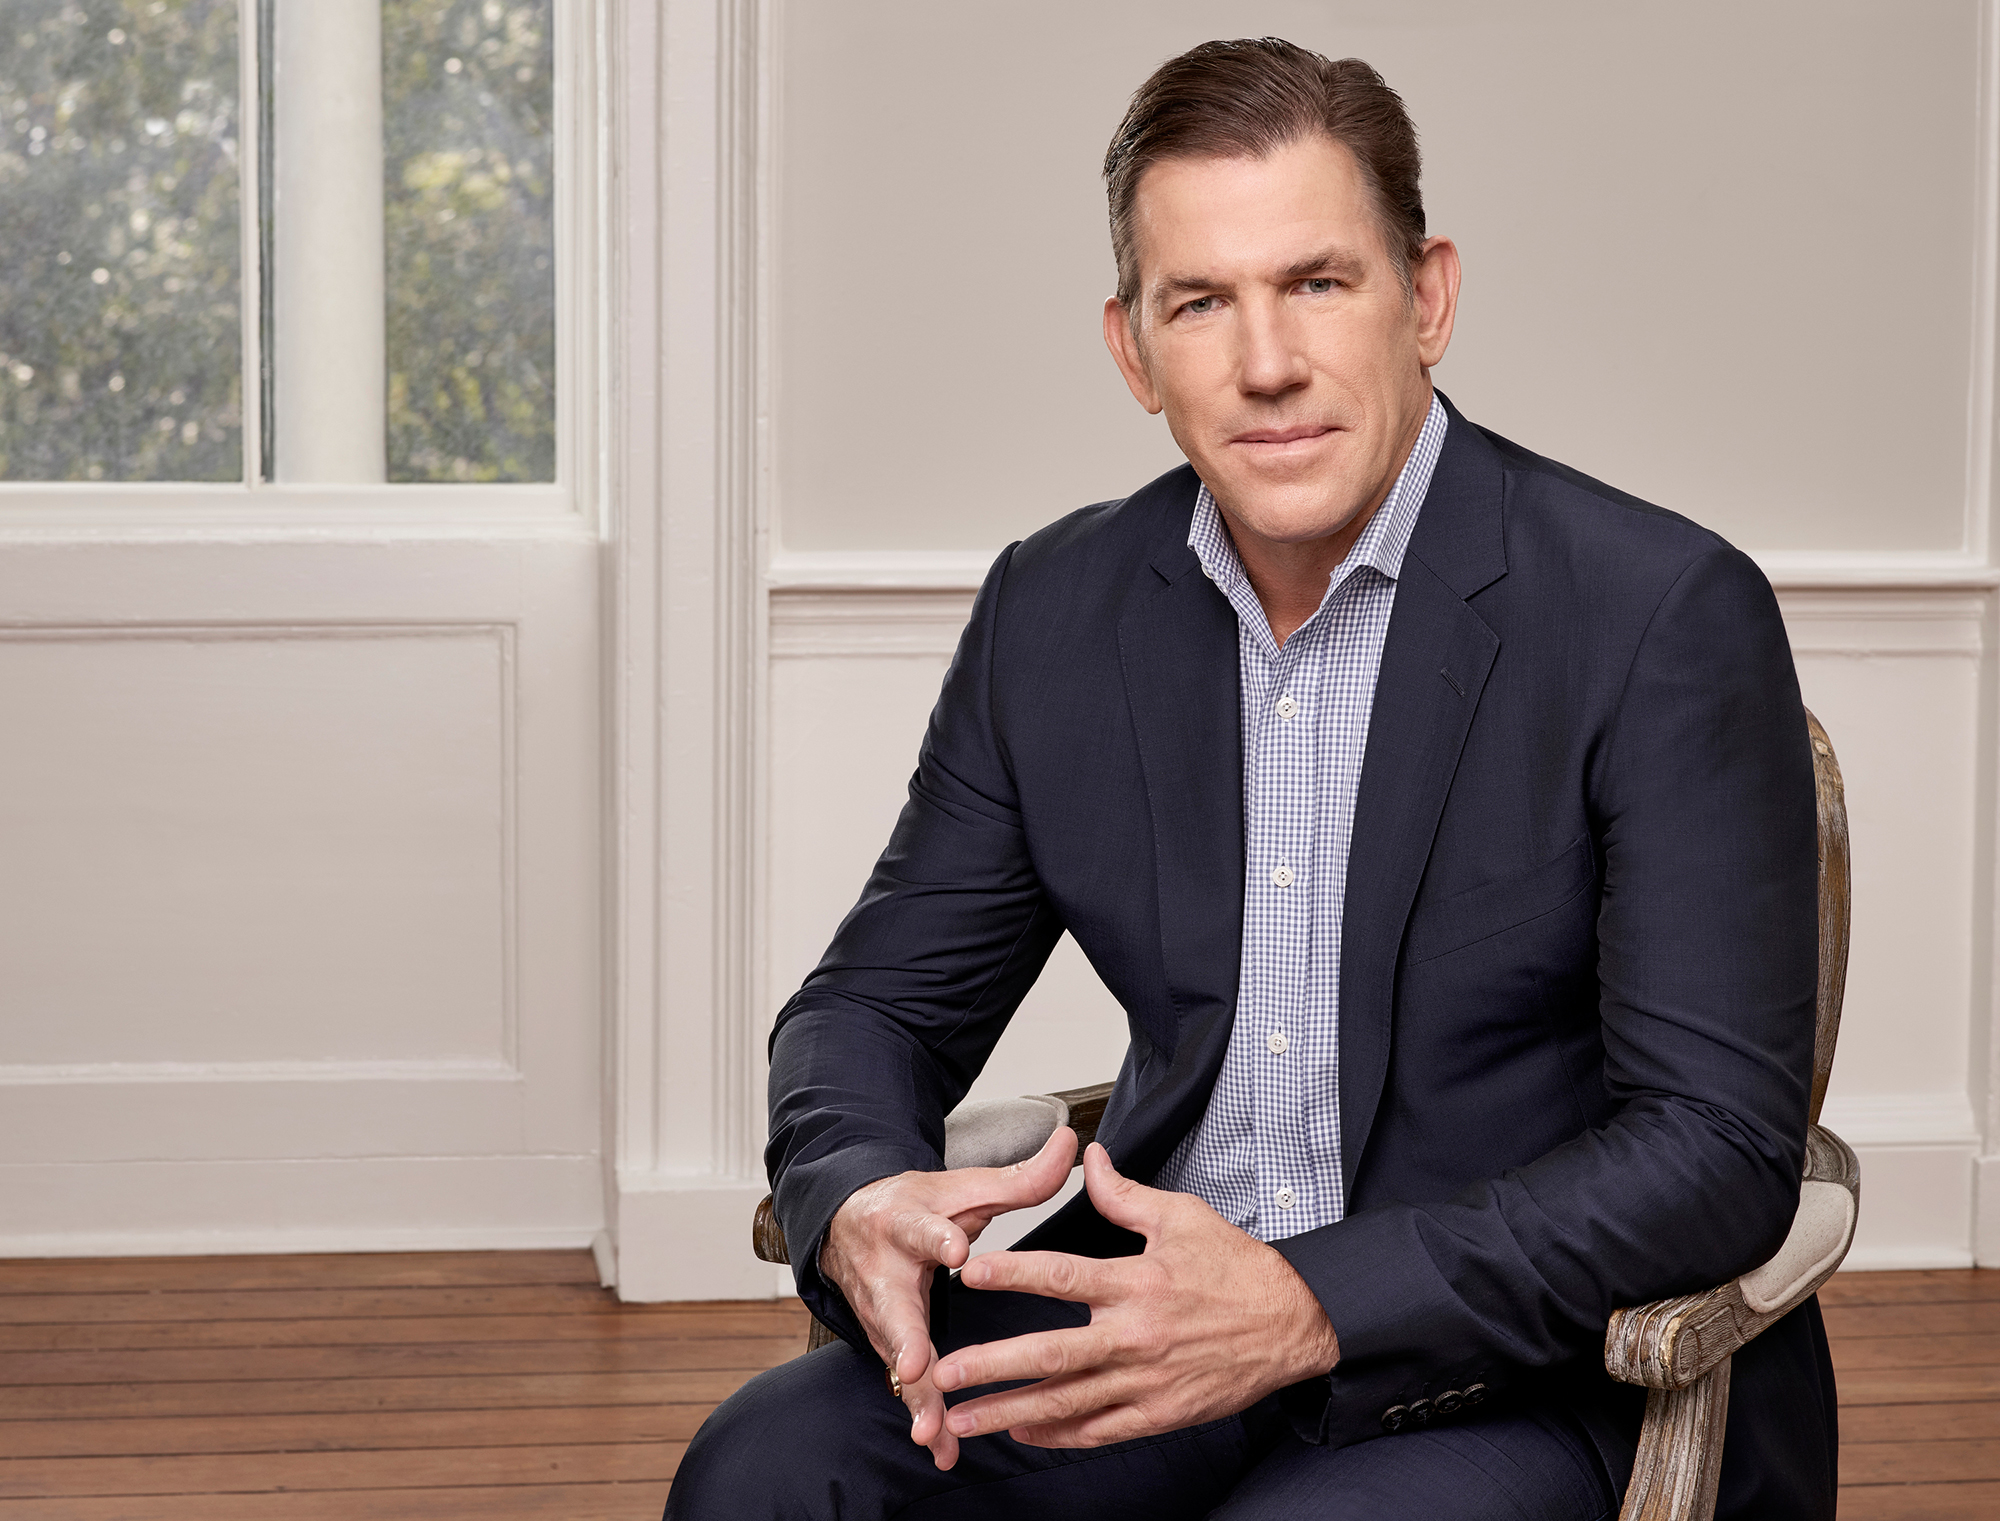 Southern Charm Thomas Ravenel Allegations and Exit - Thomas Ravenel on Season 5 of 'Southern Charm.